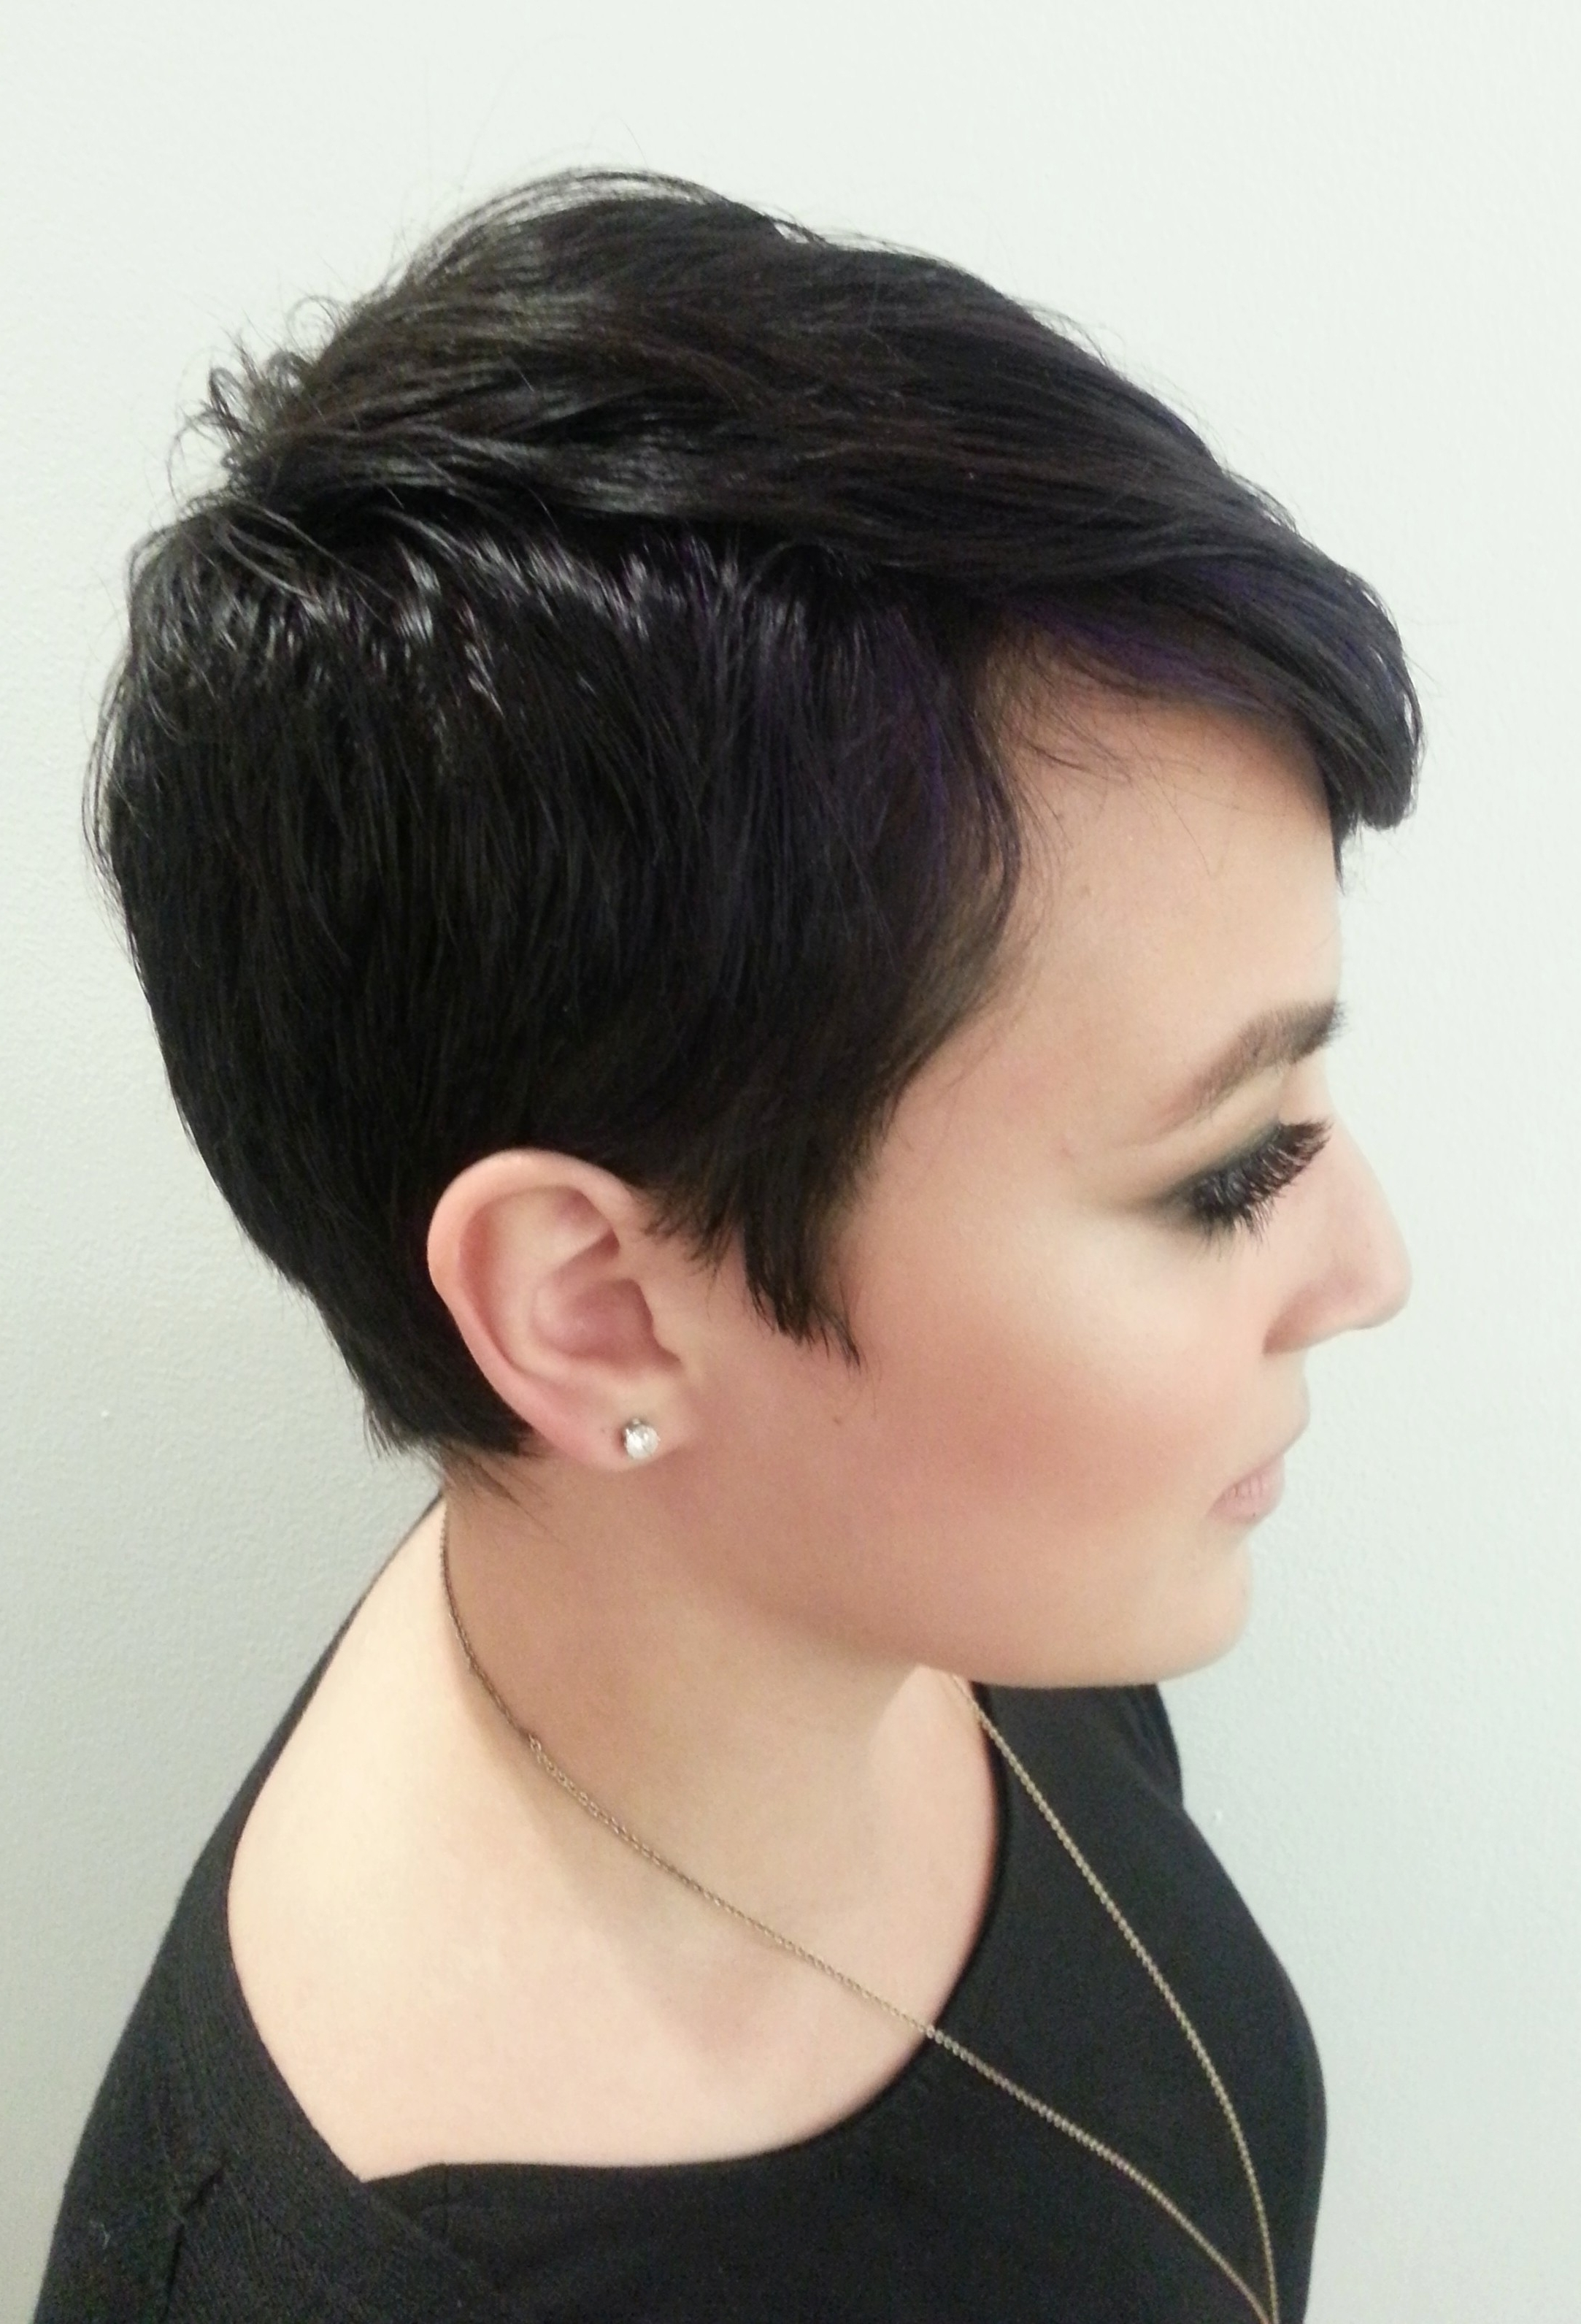 Pixie Haircut For Thick Curly Hair Short Hairstyles Thick Hair Intended For Most Current Thick Pixie Hairstyles (View 8 of 15)